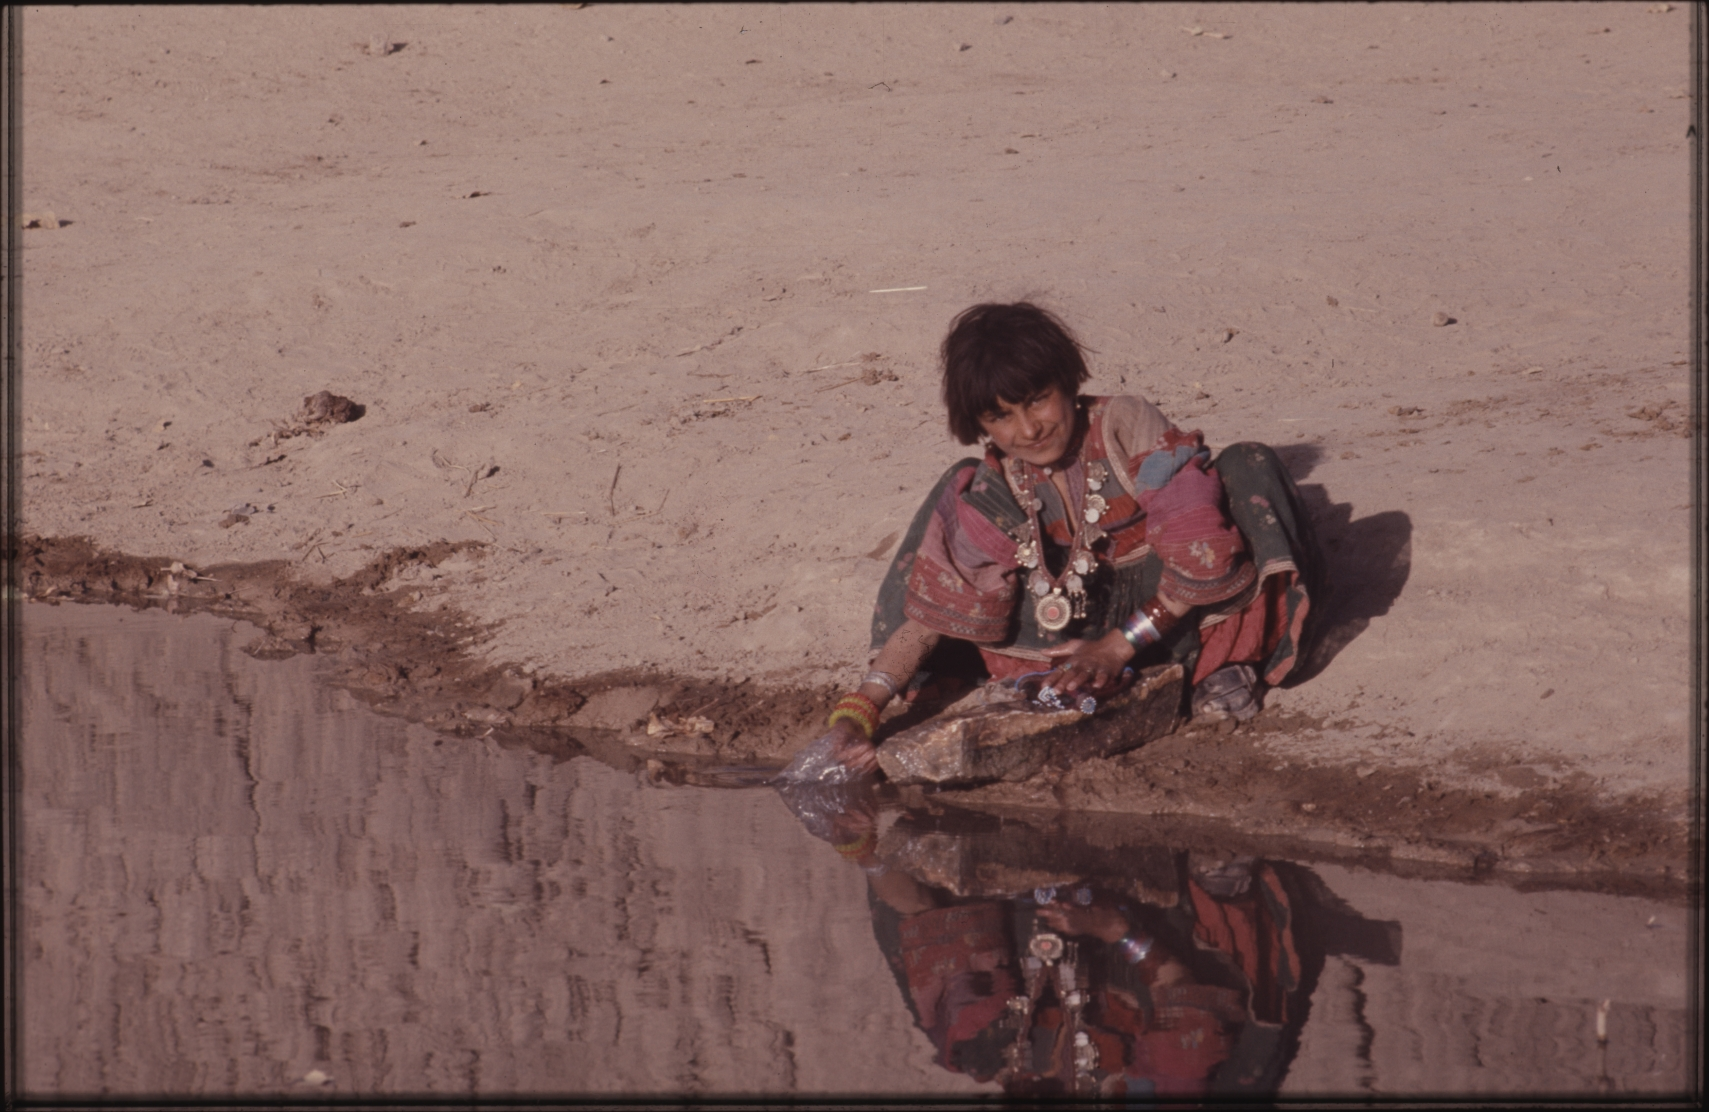 Fetching water is a girl's job. From an early age, they learn to take part in the women's chores. Photo: Jean Bourgeois, 1971